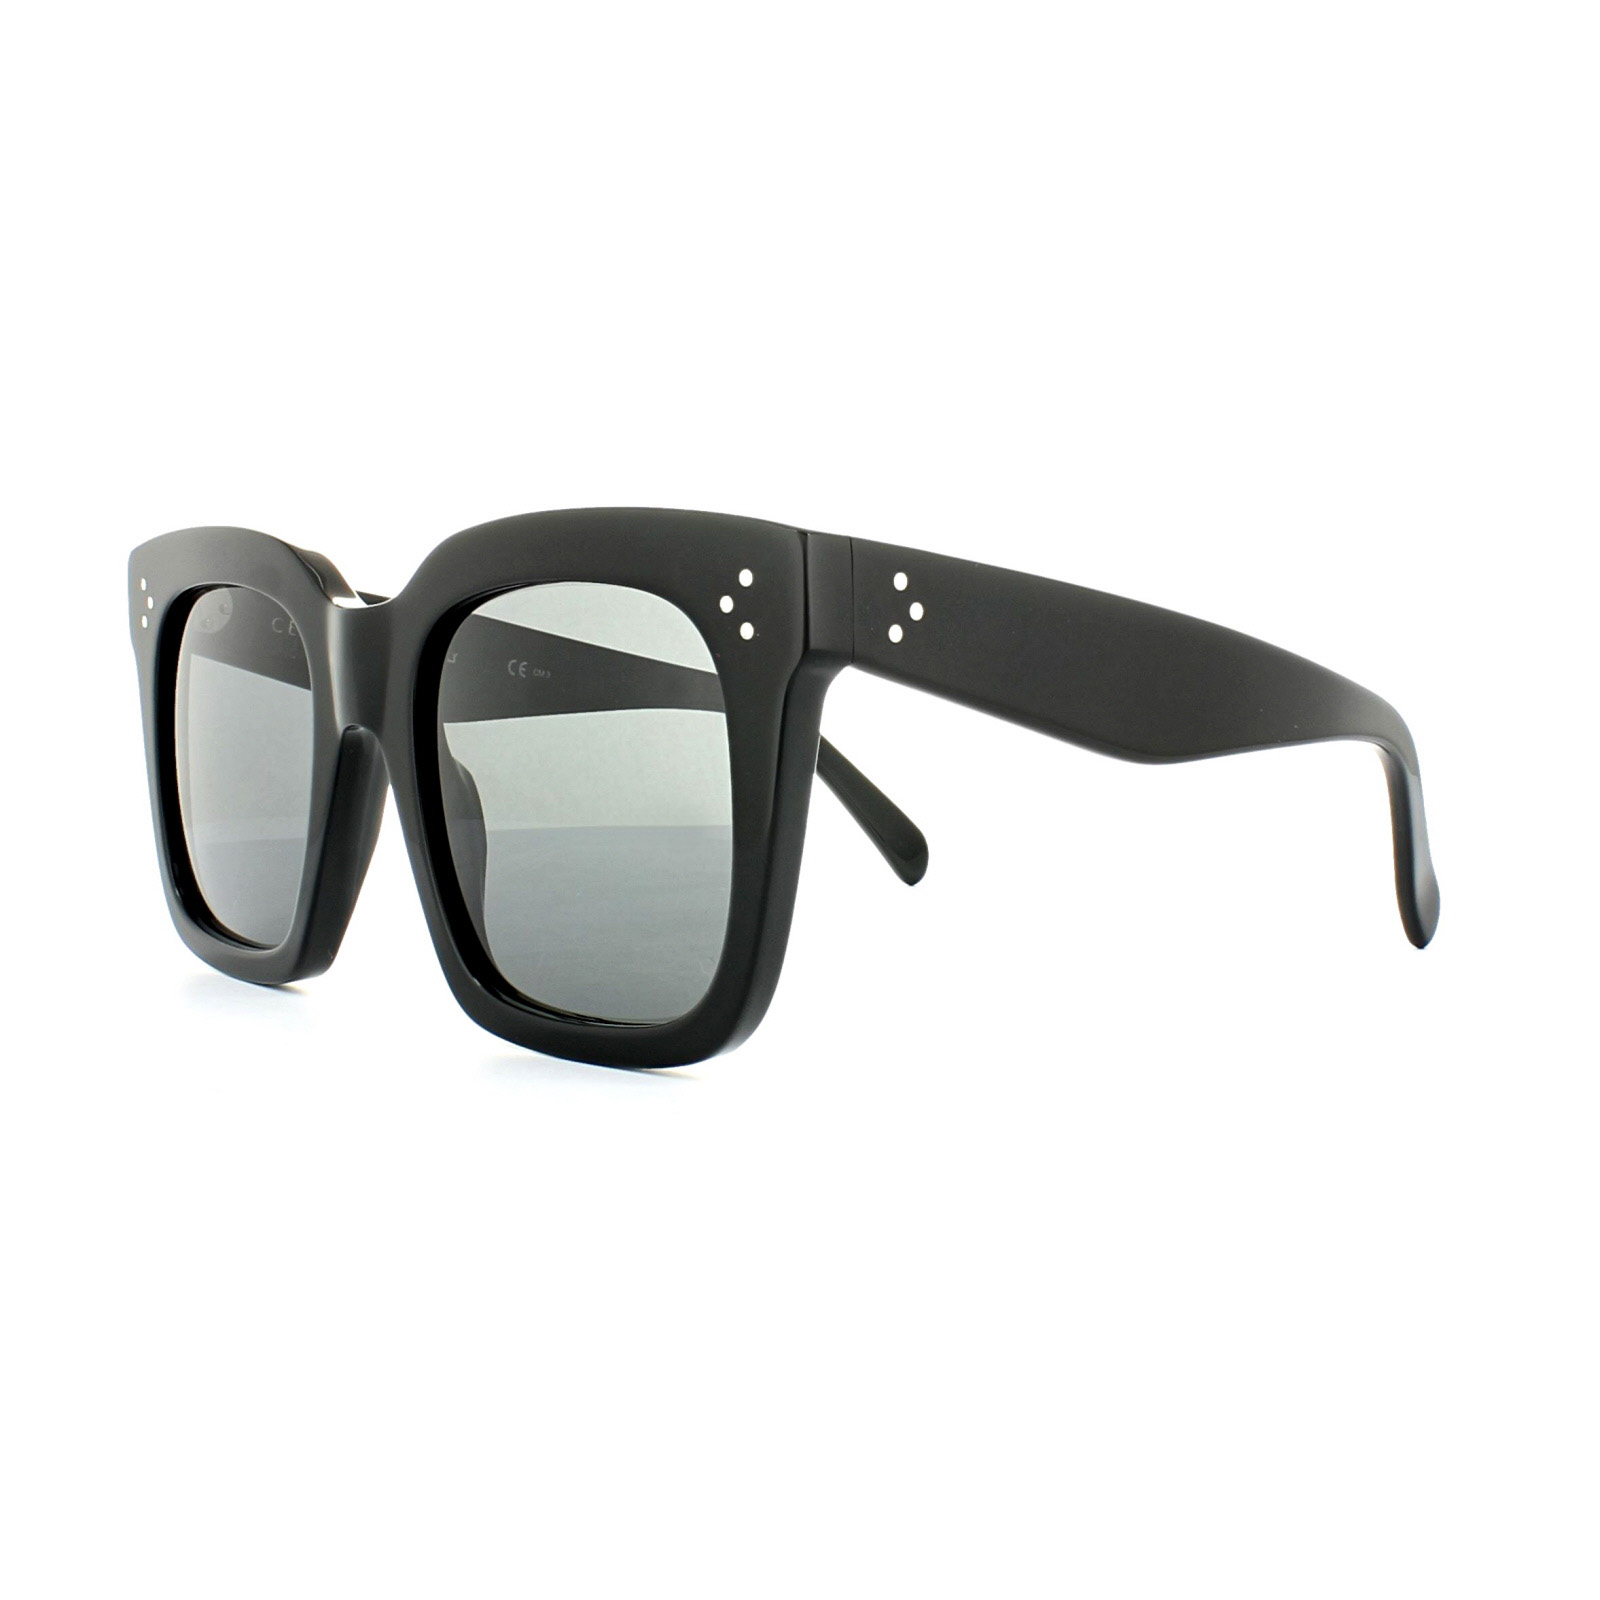 2034d59ab4ea Celine Sunglasses 41076 S Tilda 807 BN Black Dark Grey Thumbnail 1 ...